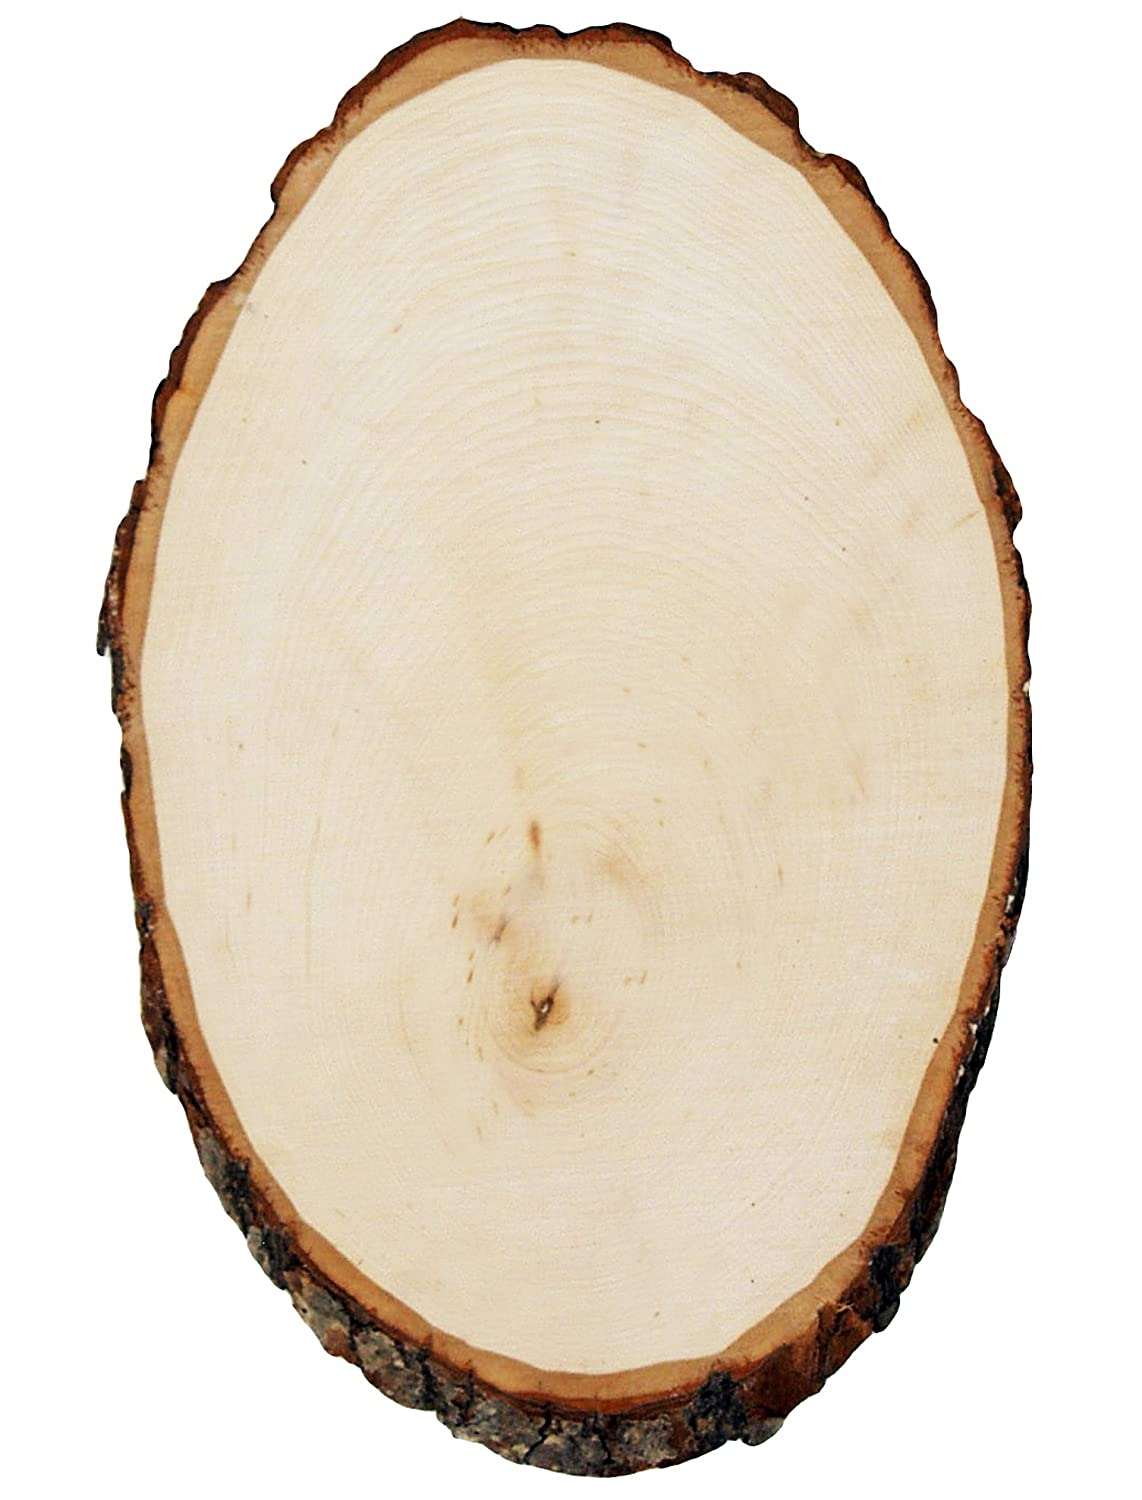 Advice on cutting lumbar into 1 8 art canvas by for How to cut wood slices